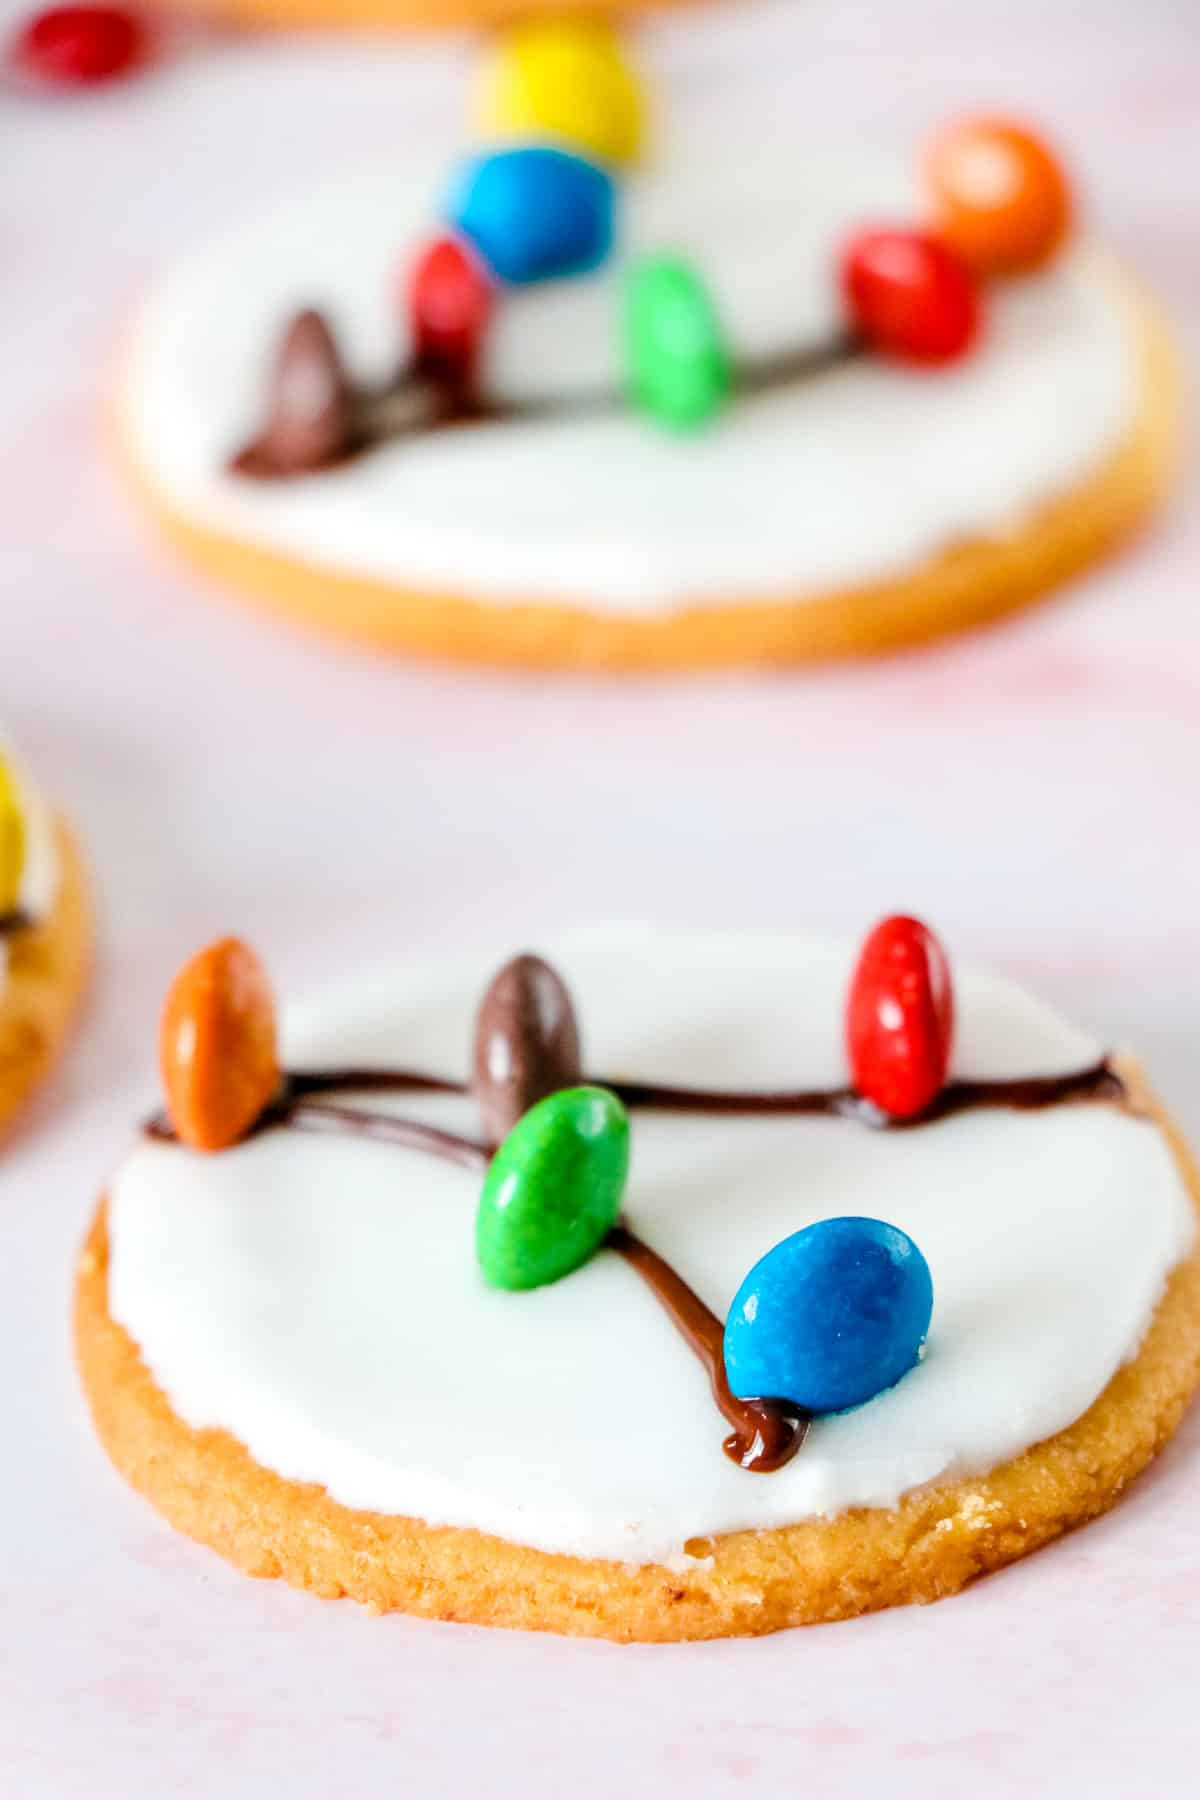 sugar cookie with frosting and m&ms made to look like christmas light decorations